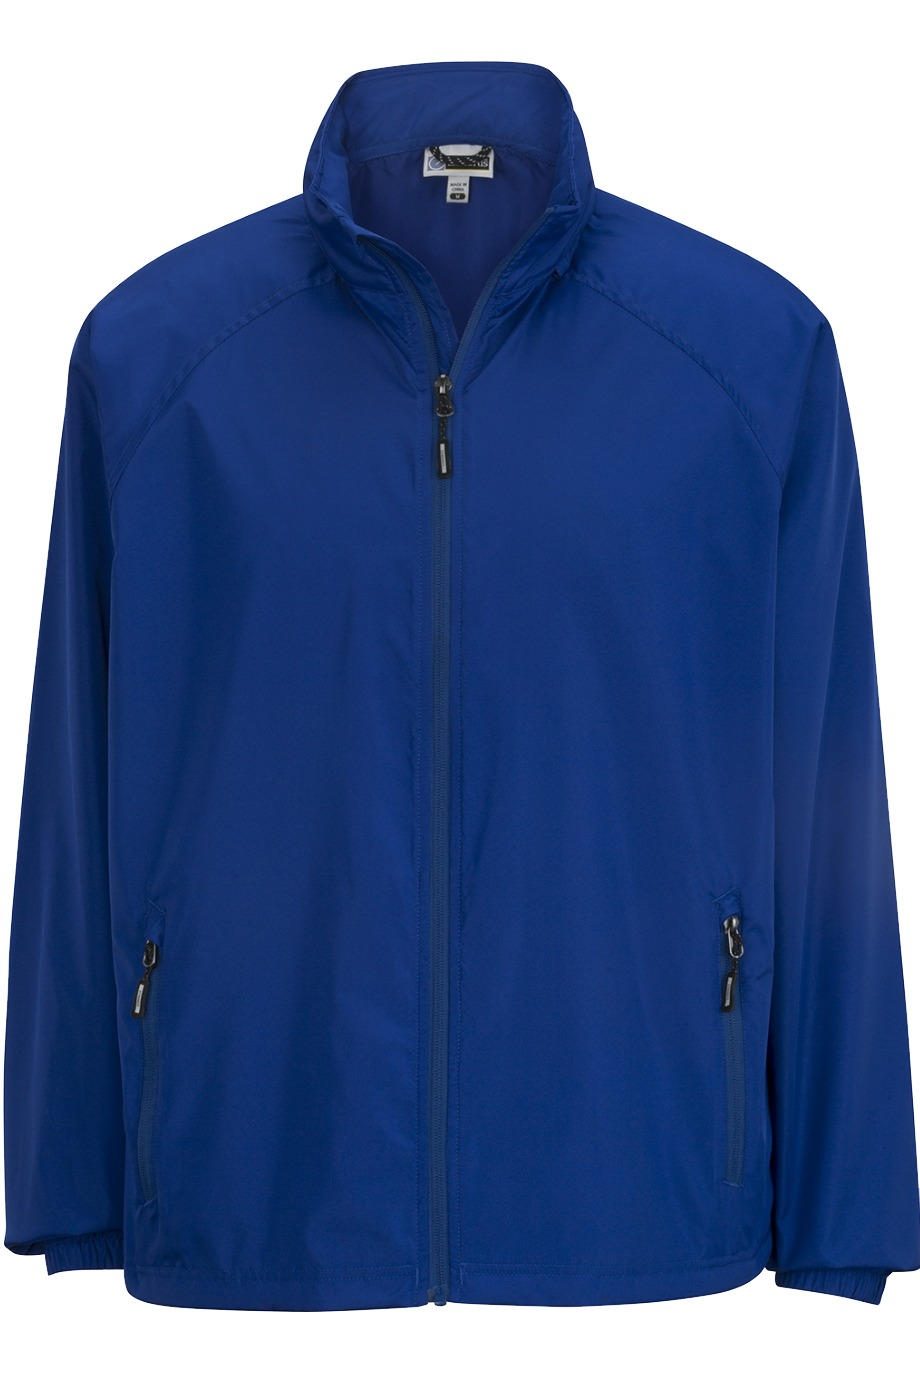 Edwards Garment 3435 - Men's Hooded Rain Jacket